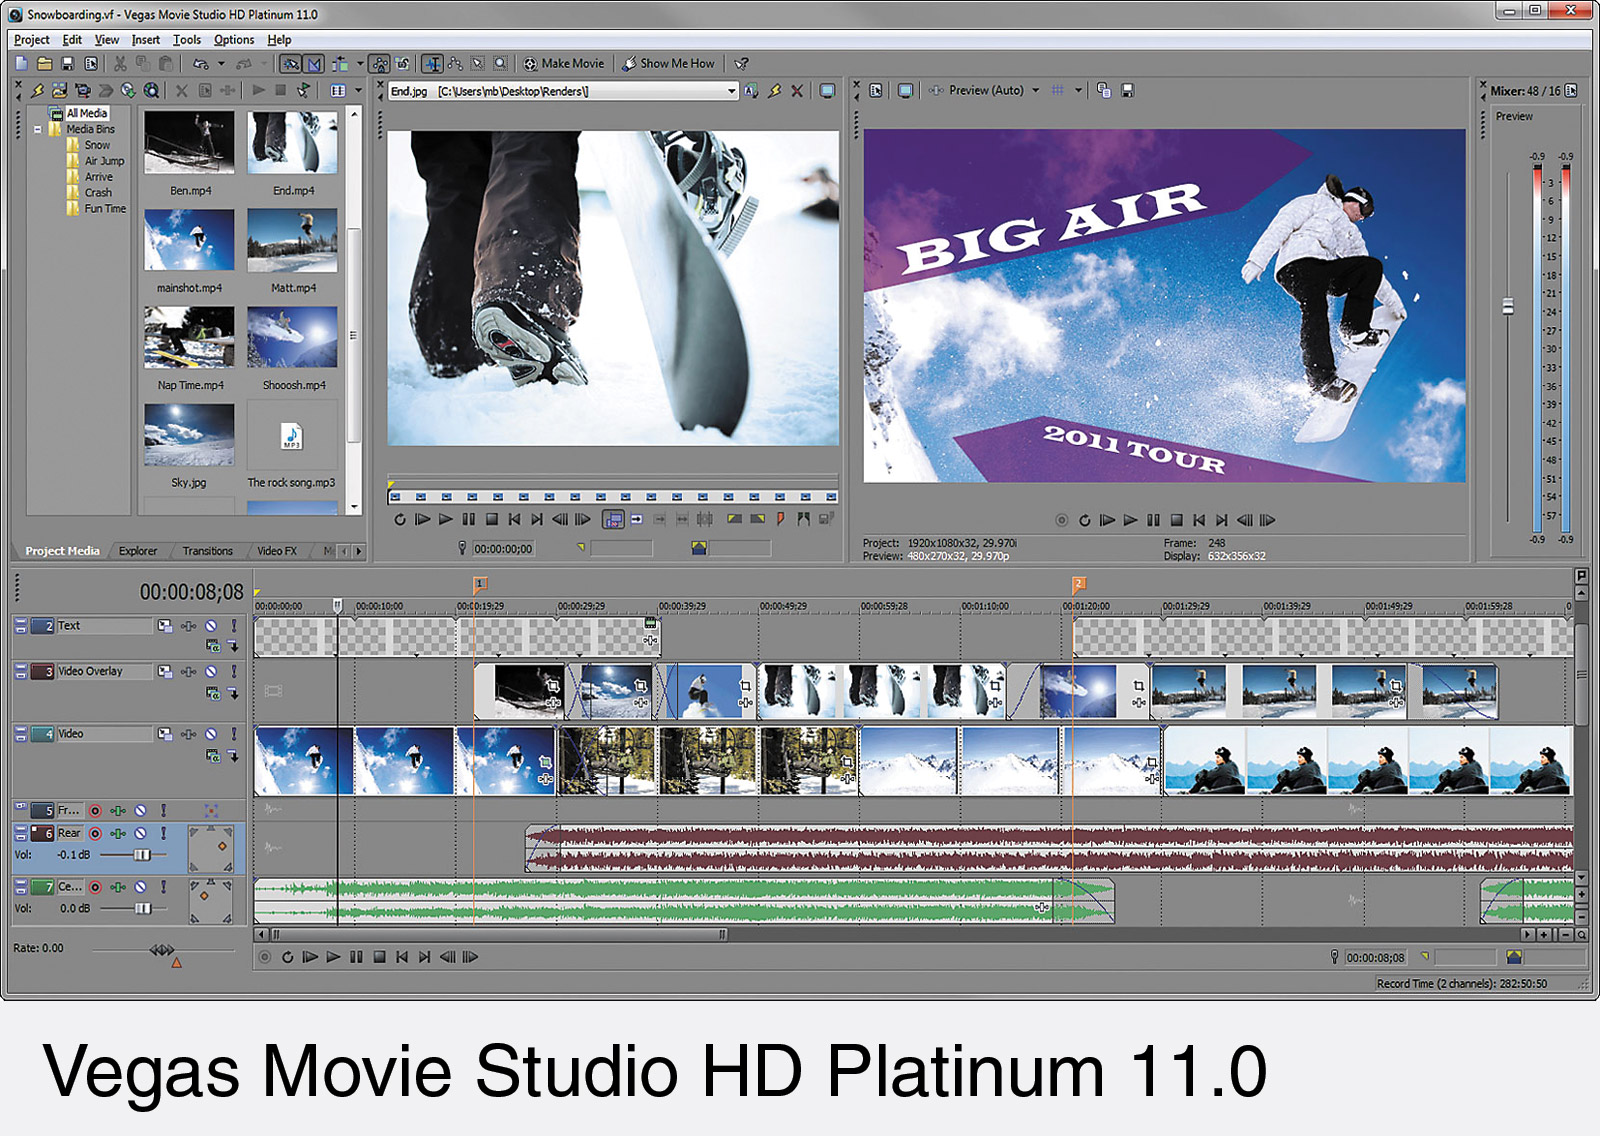 SONY VEGAS MOVIE STUDIO HD PLATINUM 11 SOFTWARE Video edit